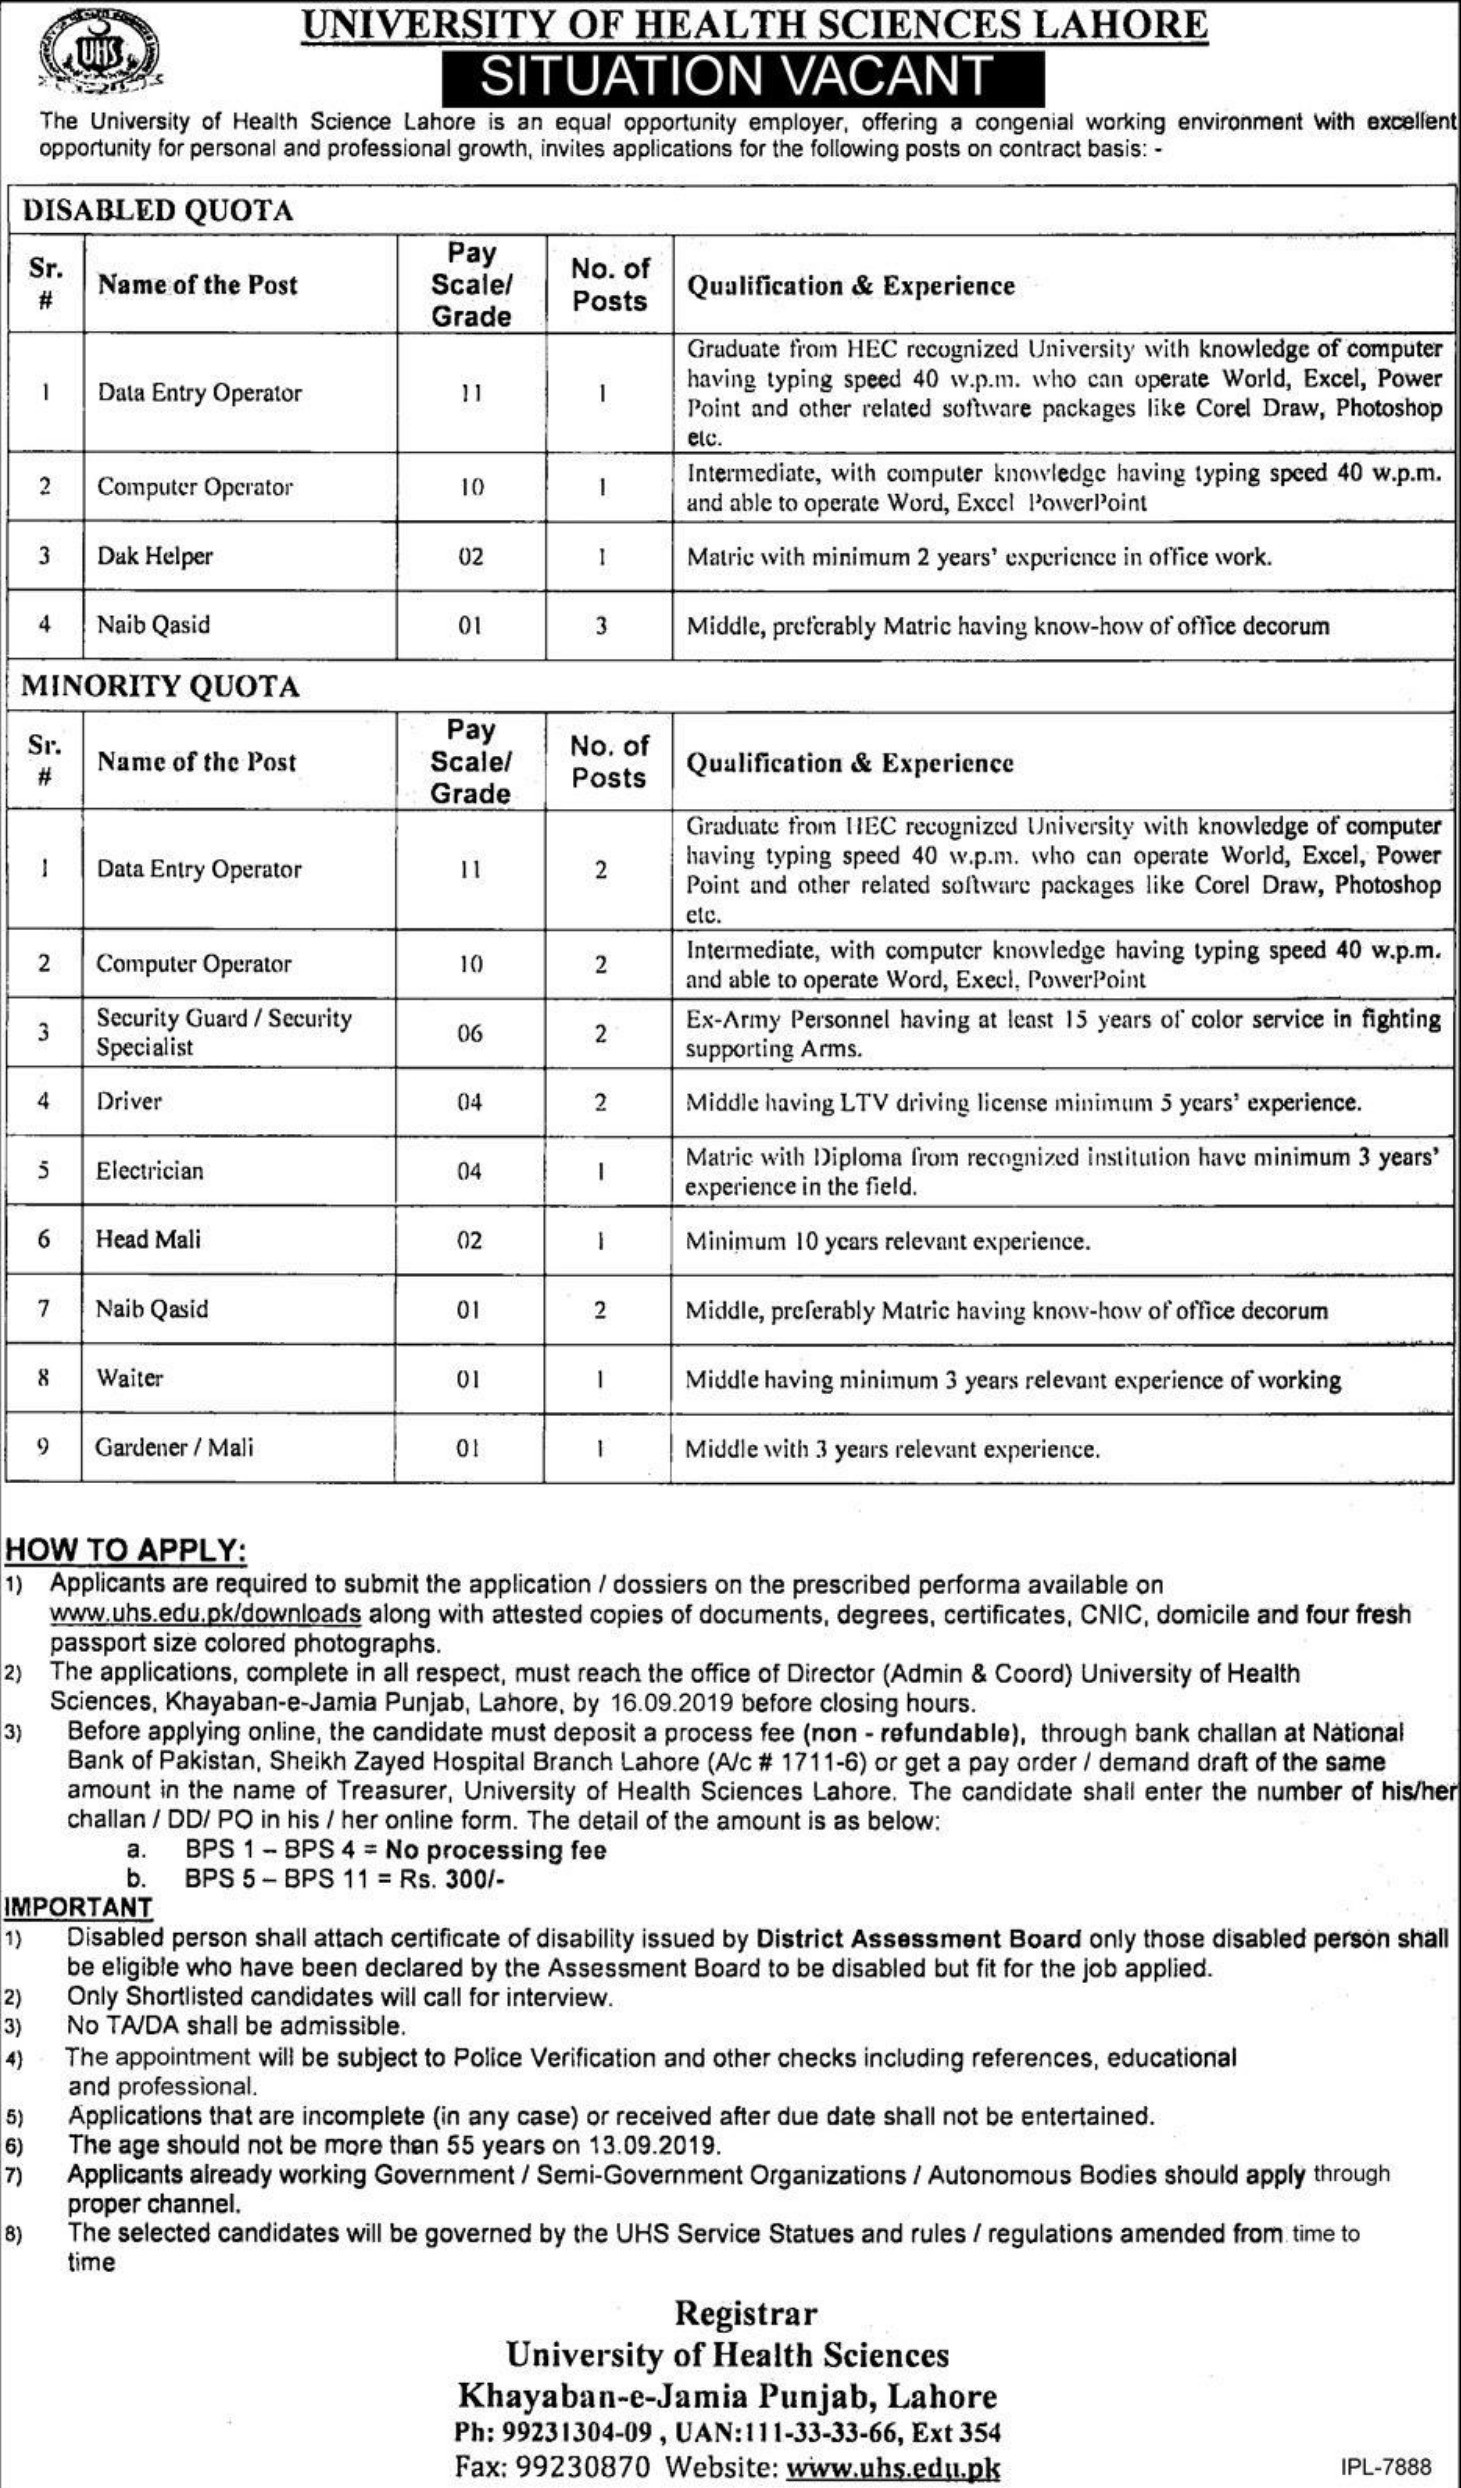 University of Health Sciences UHS Lahore Jobs 2019 Application Form